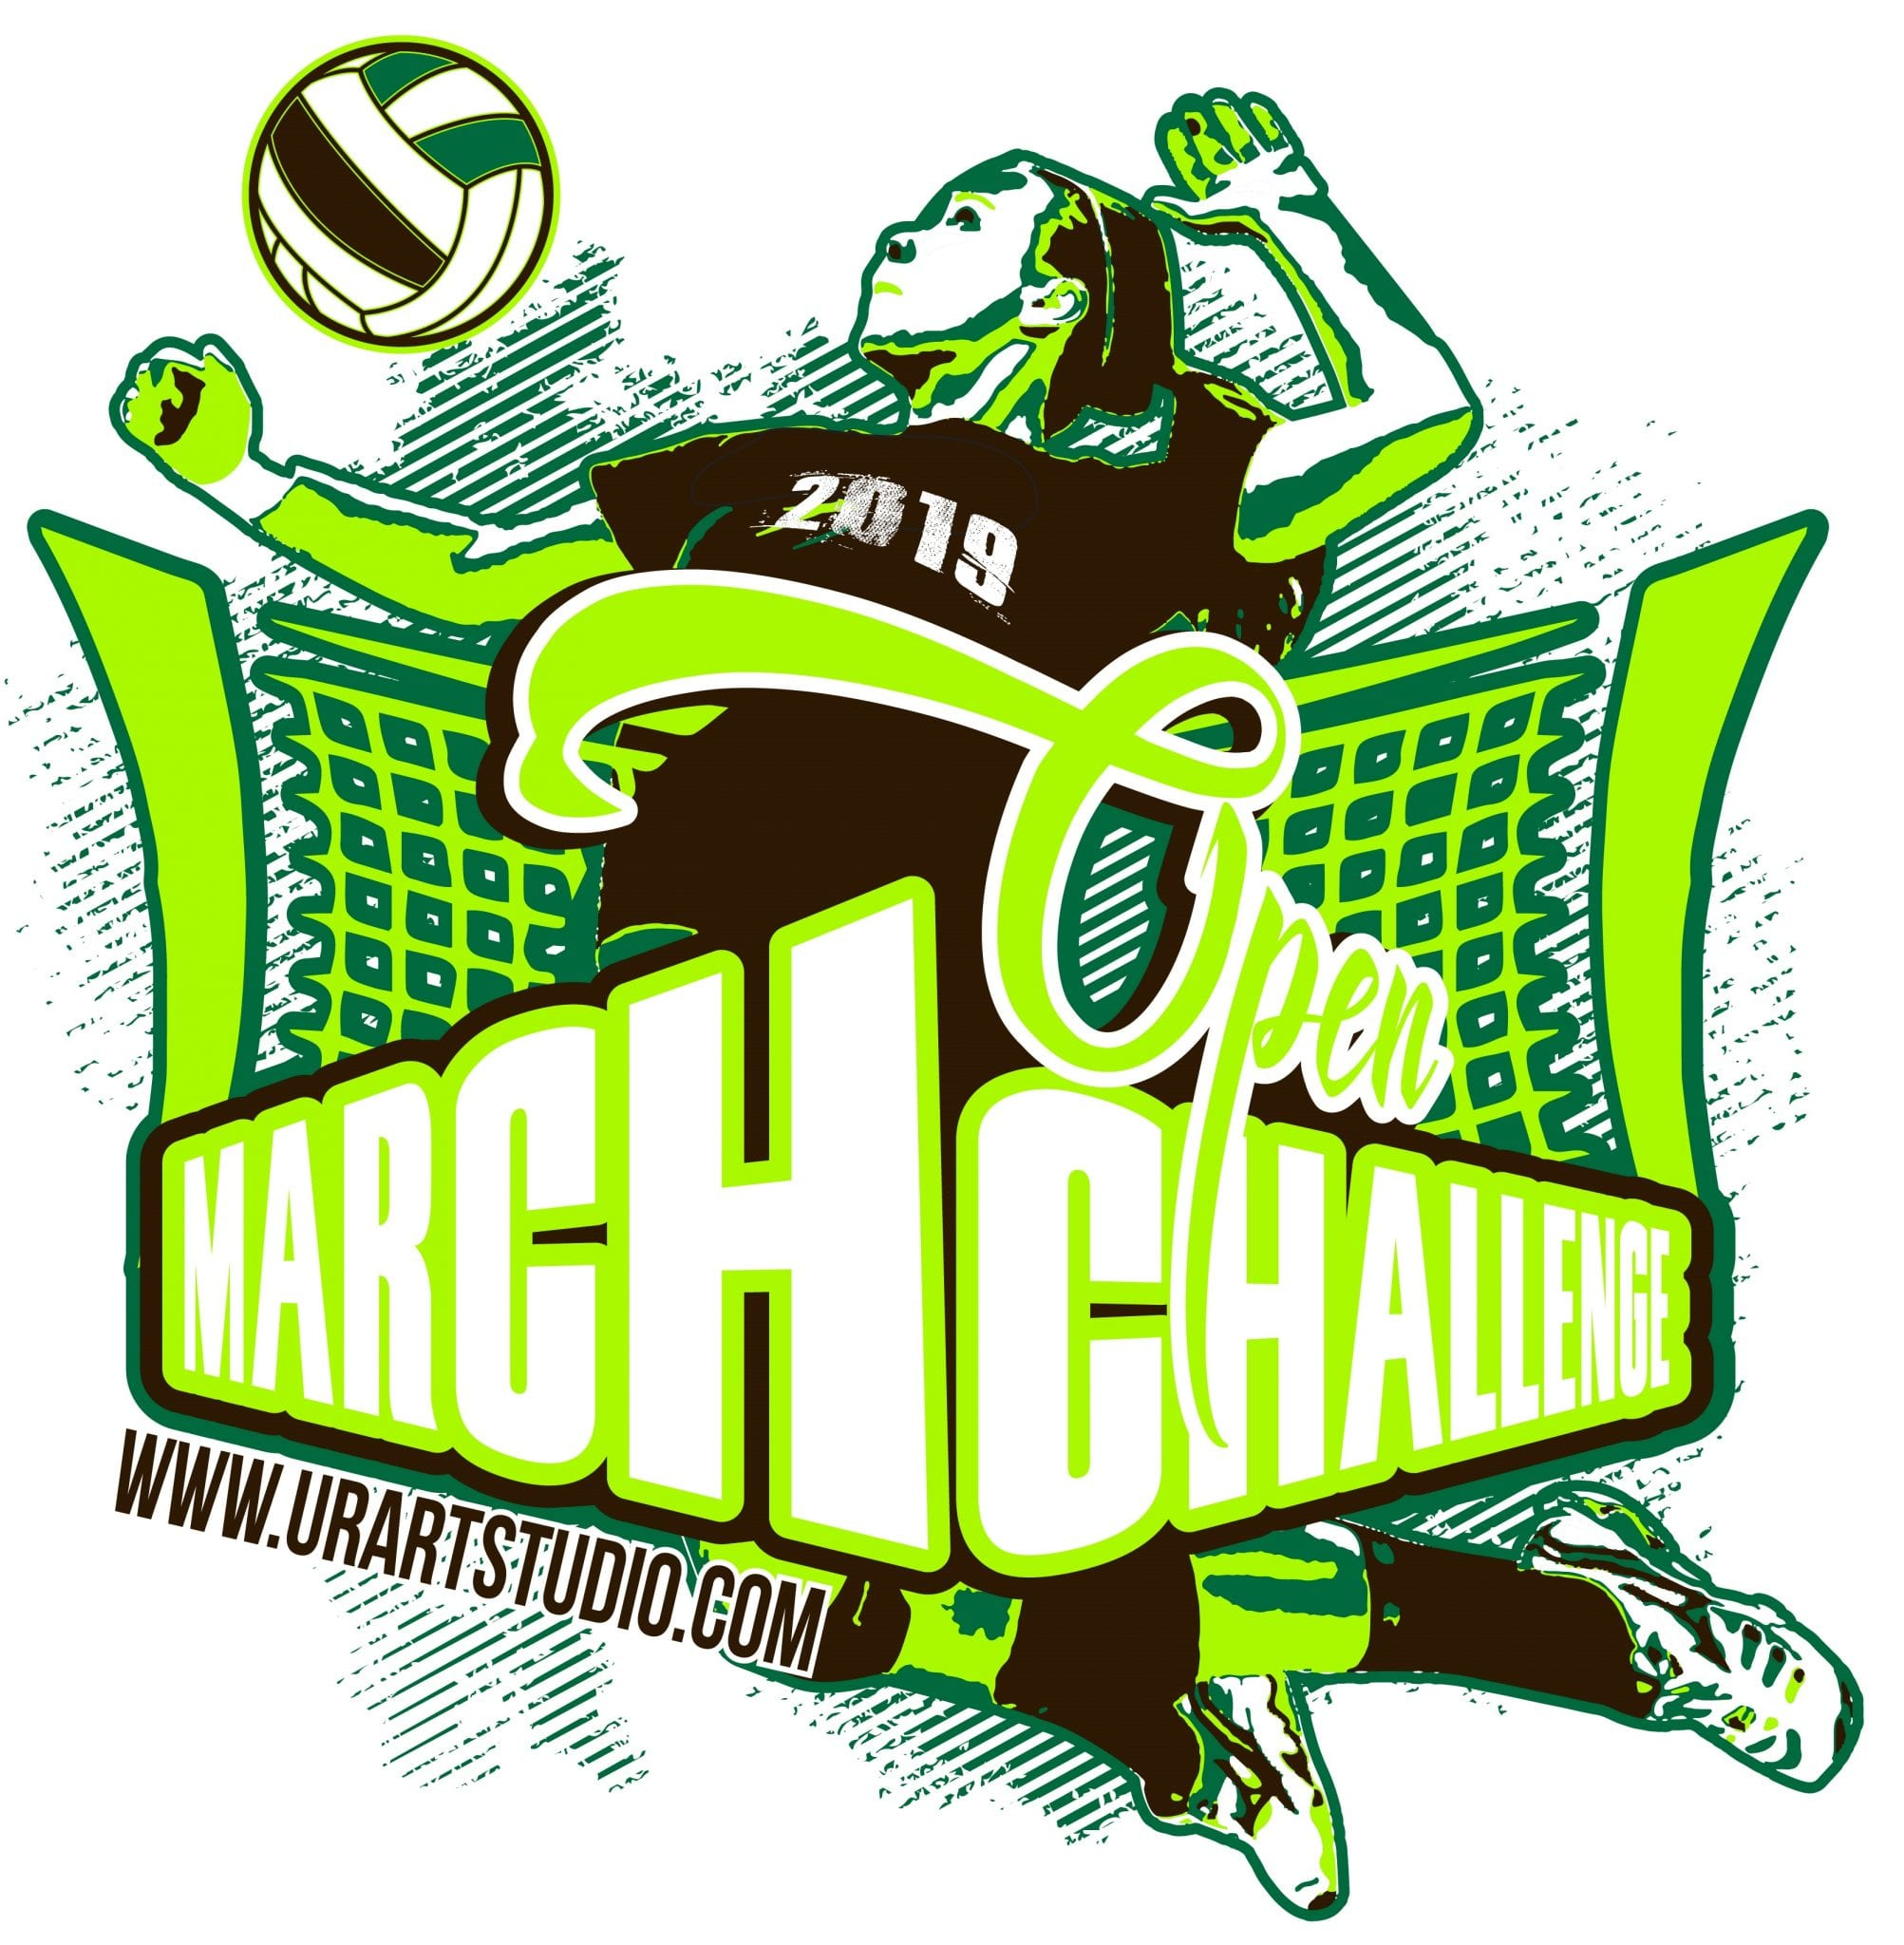 VOLLEYBALL MARCH CHALLENGE 2019 T shirt vector logo design for print